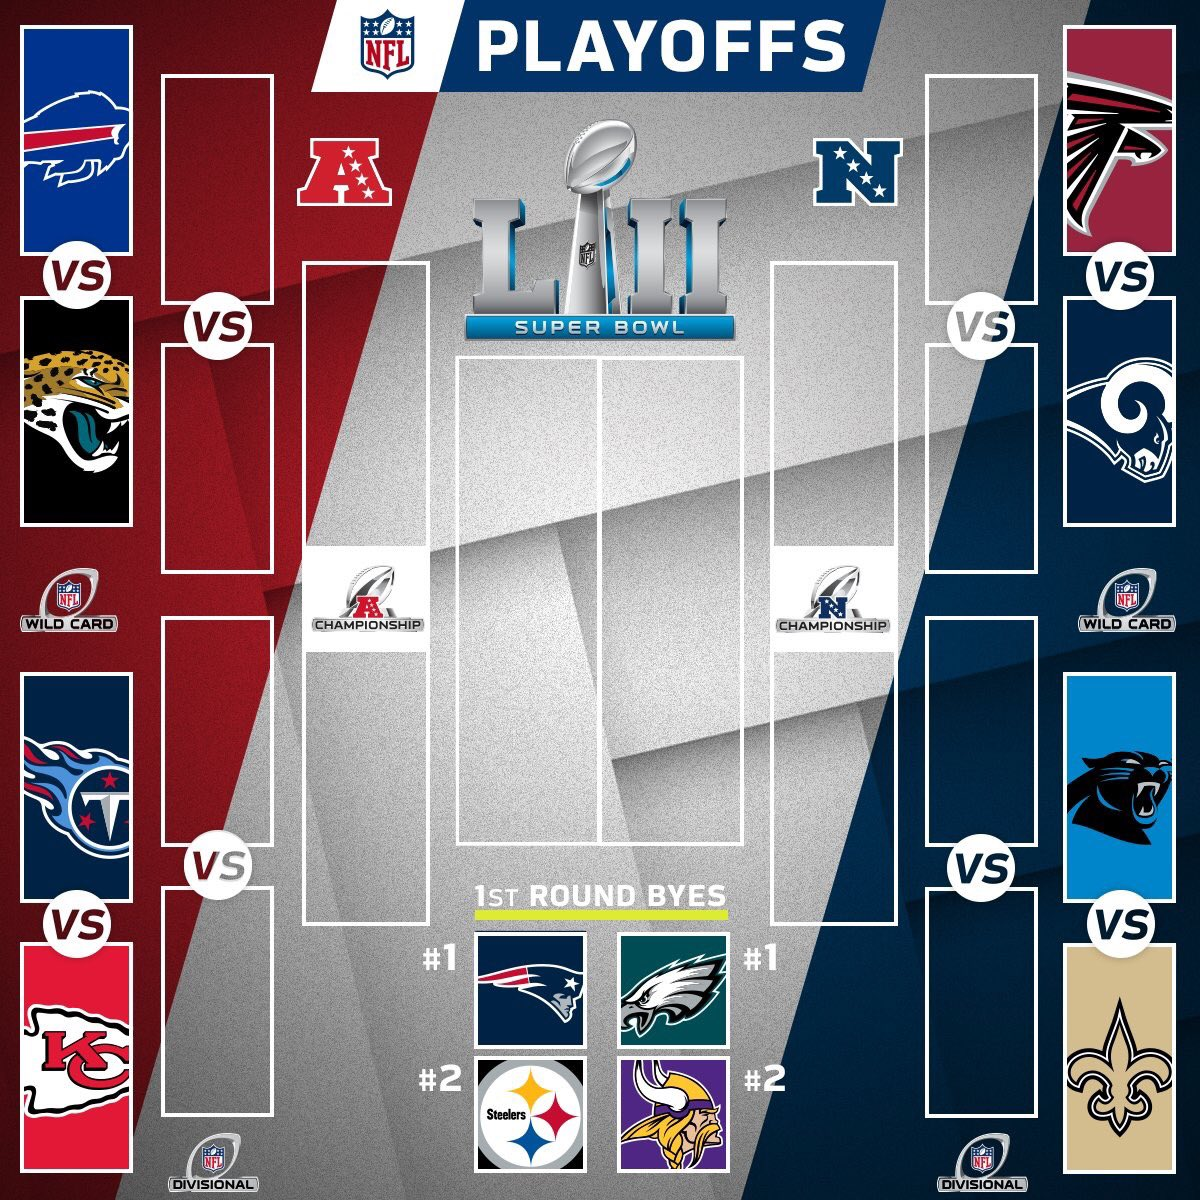 Playoffs-NFL-2018